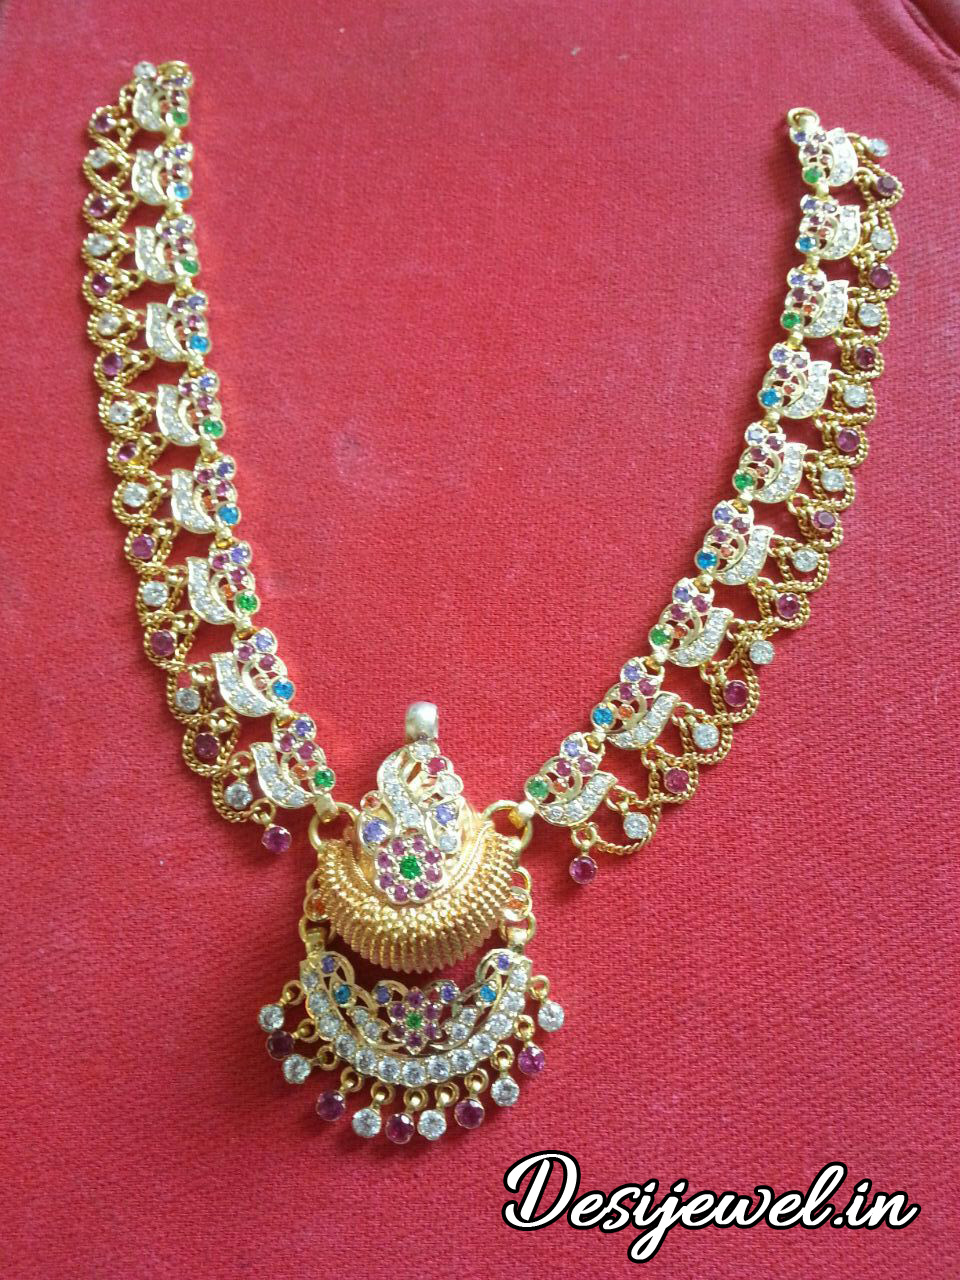 Marwadi Rajasthani Desi gold Rakhdi-Set And Weight is 35-40 gm